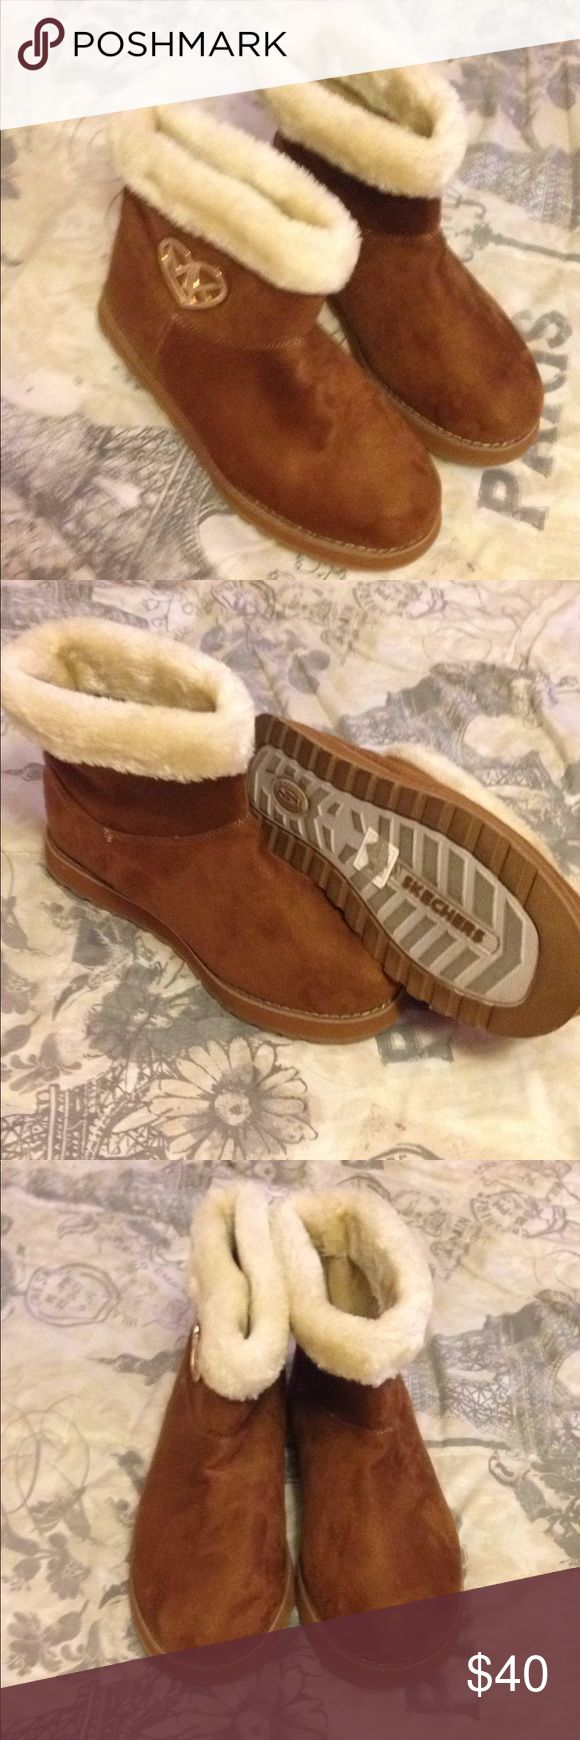 Skechers boots Brown with fur trim, new never worn Skechers Shoes Ankle Boots & Booties